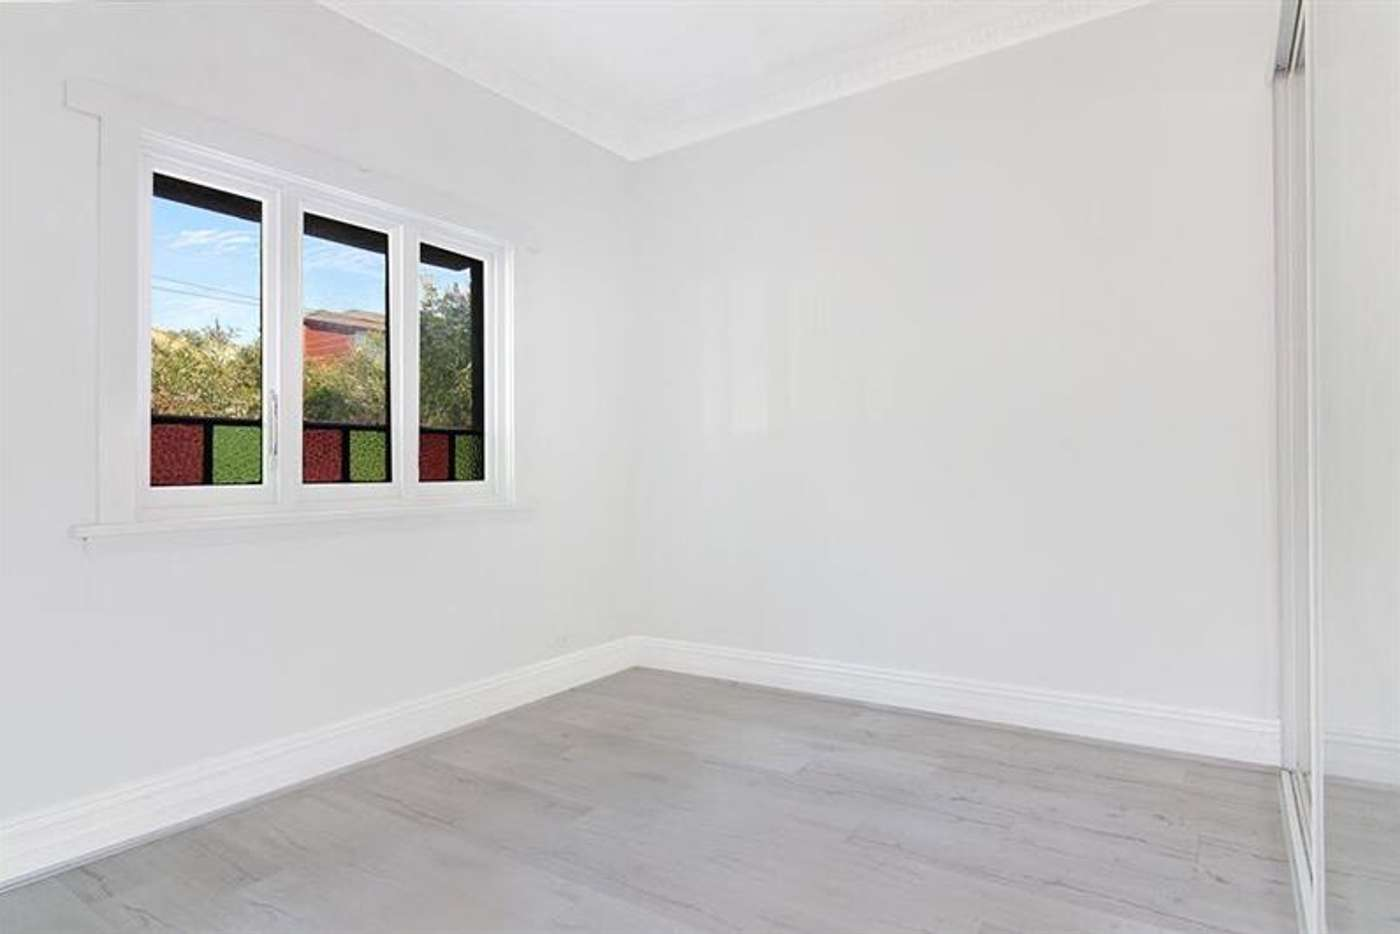 Sixth view of Homely house listing, 23 Gordon Street, Rozelle NSW 2039